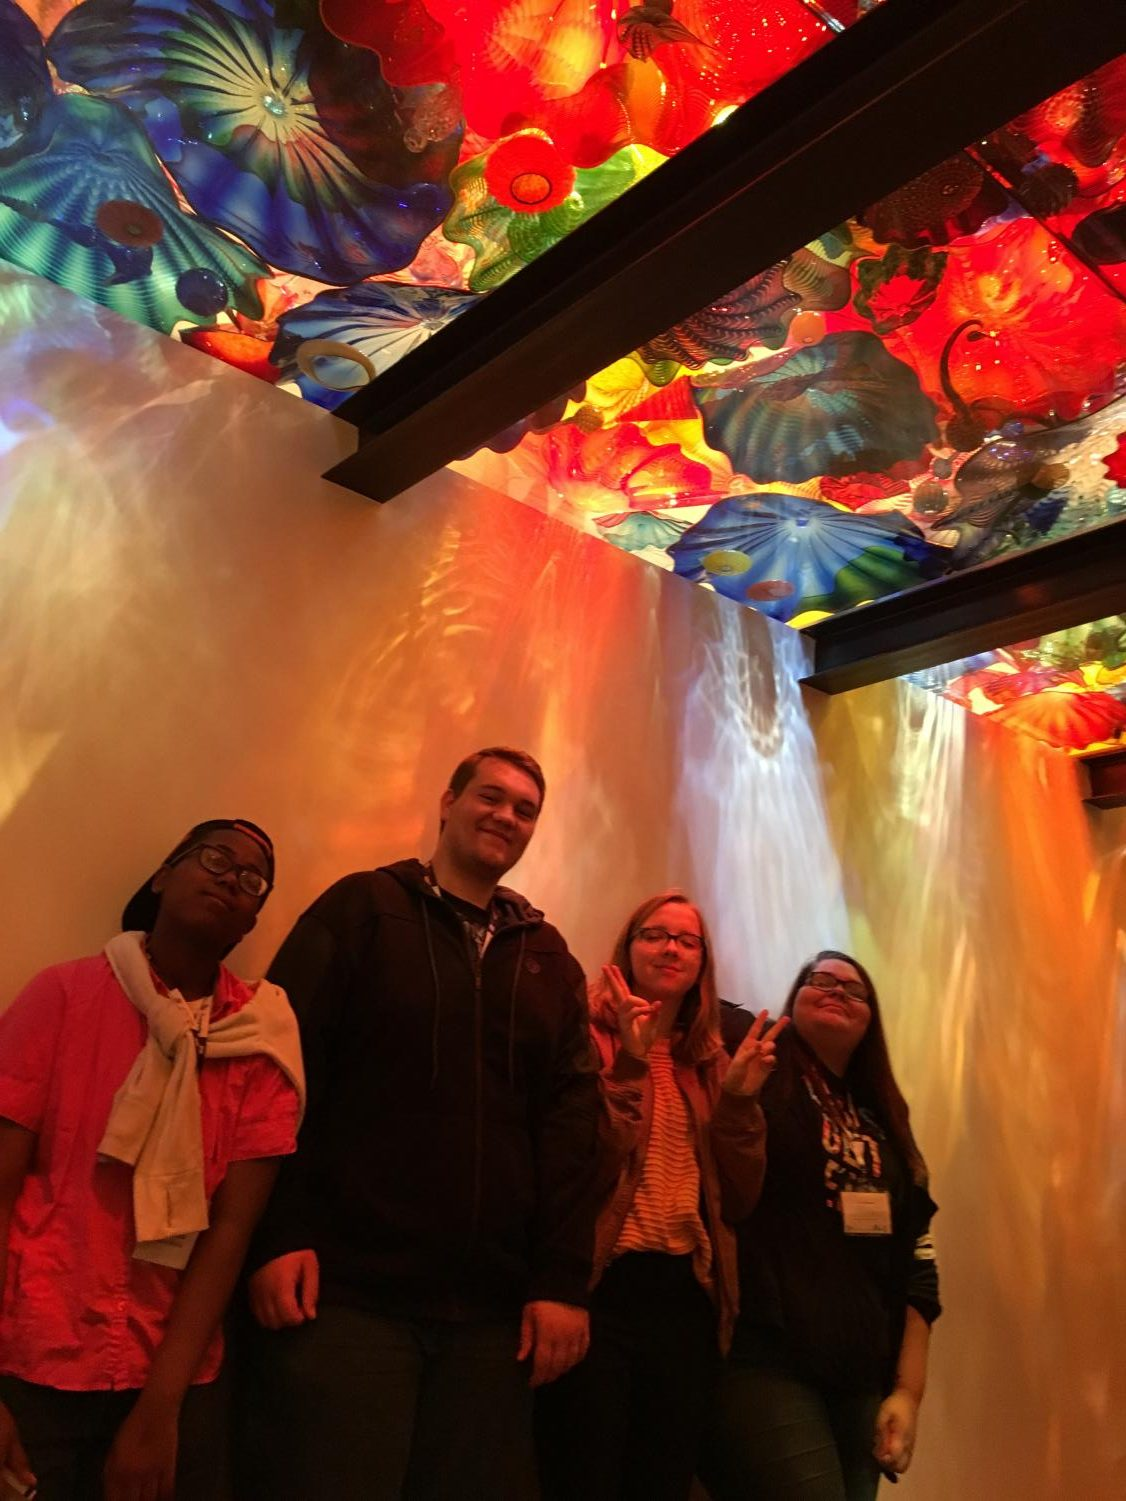 On Mar. 24, 2018, National Art Honors Society members visited the Chihuly Garden and Glass art museum while in Seattle Washington. Above the students sits multiple colorful glass sculptures, made by Dale Chihuly, with lights shining through them. Photo courtesy of Christina Witulski